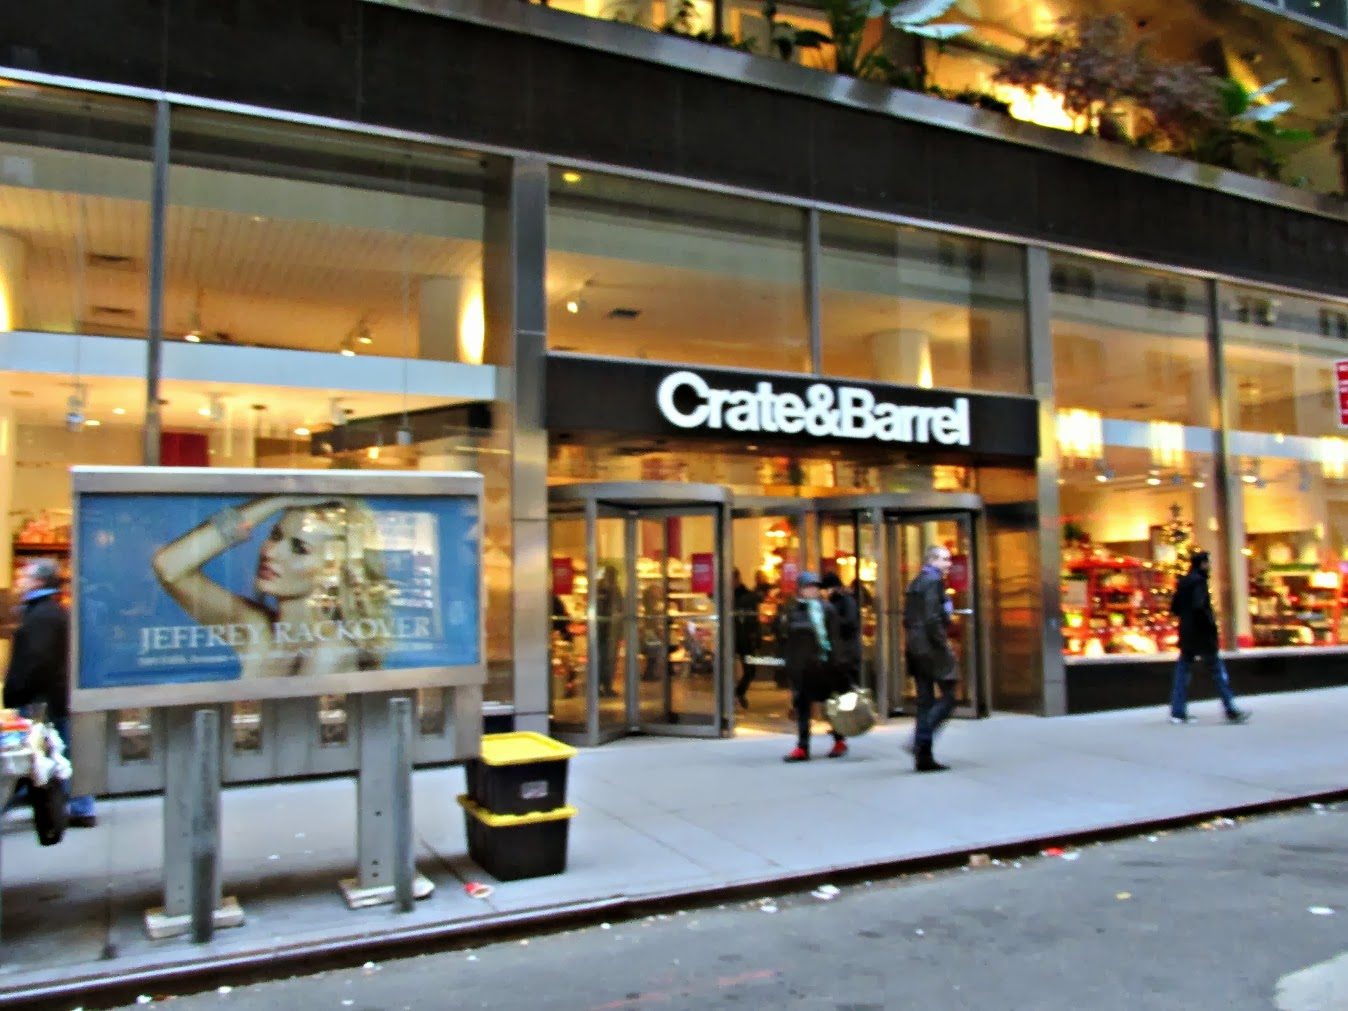 midtown blogger manhattan valley follies crate and barrel midtown east. Black Bedroom Furniture Sets. Home Design Ideas